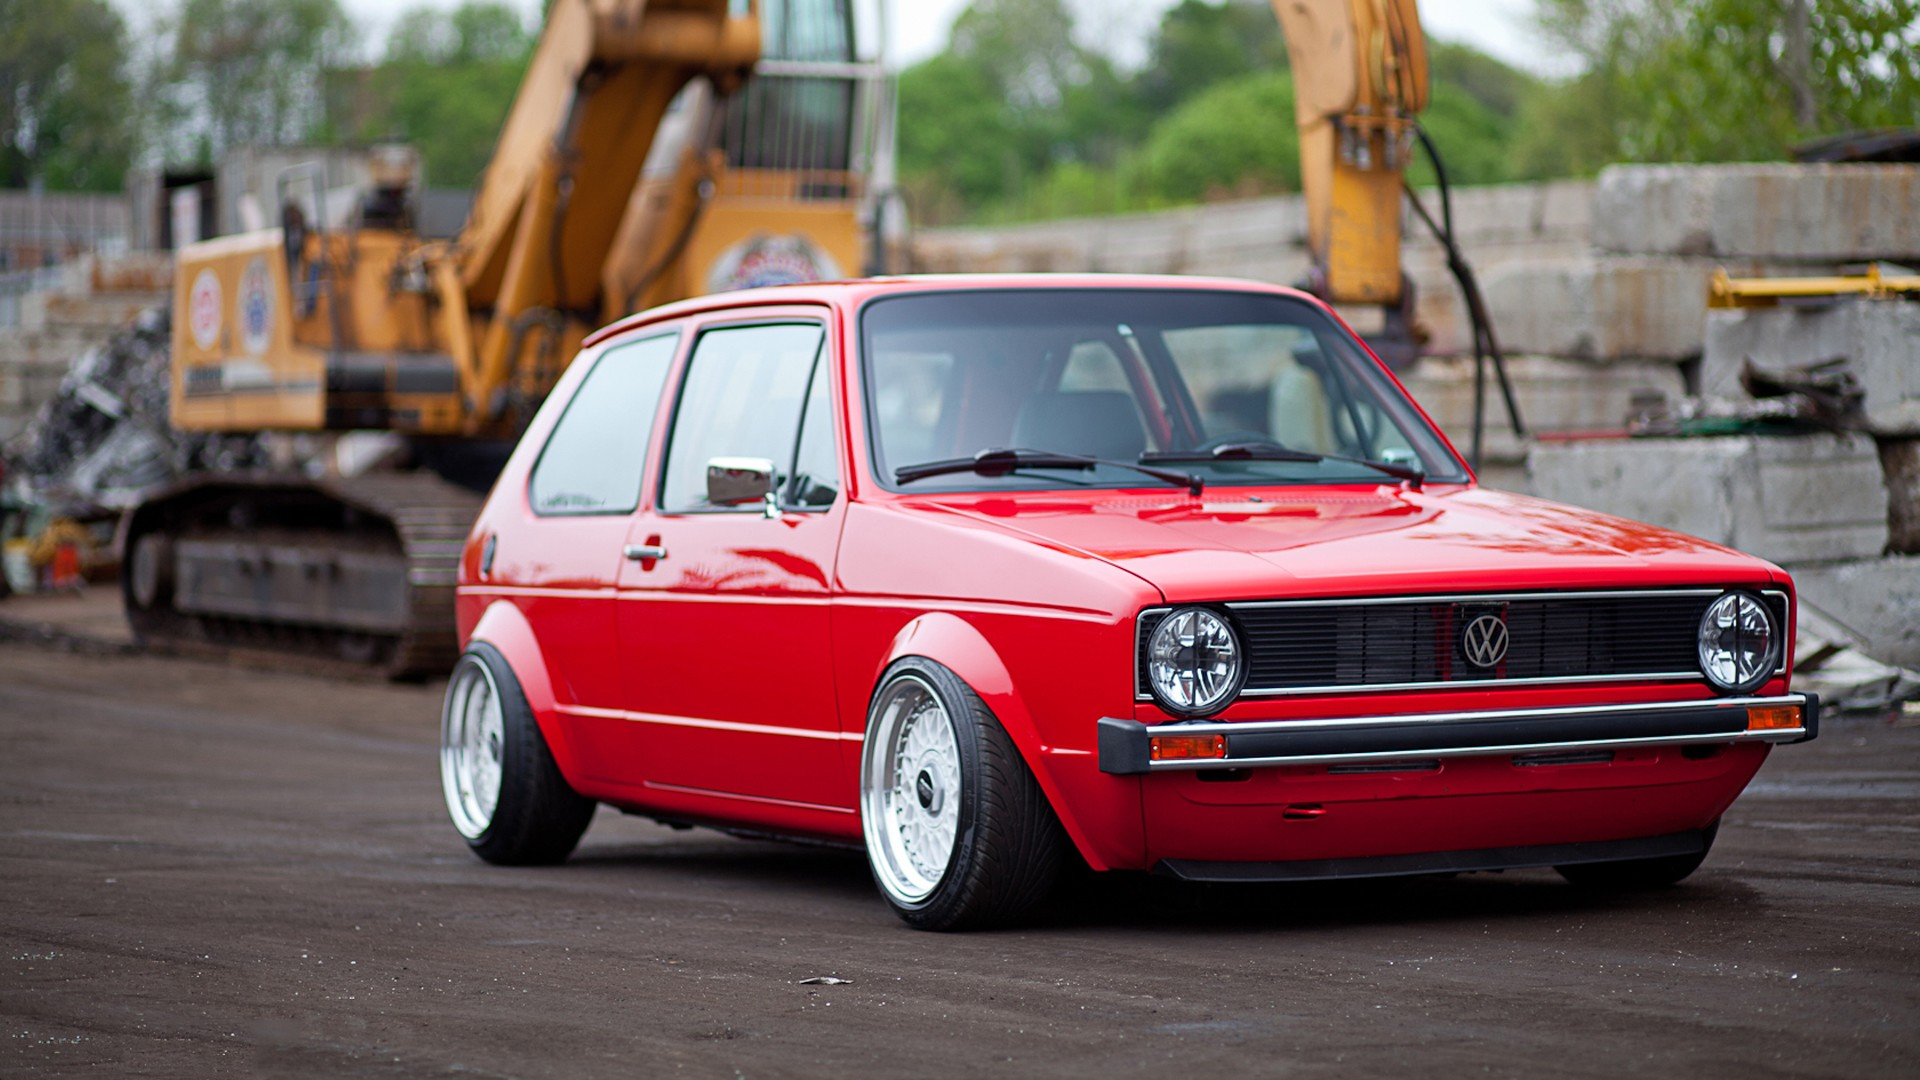 Tuned Golf Mk1 HD Wallpaper 1920x1080 ID51719 1920x1080